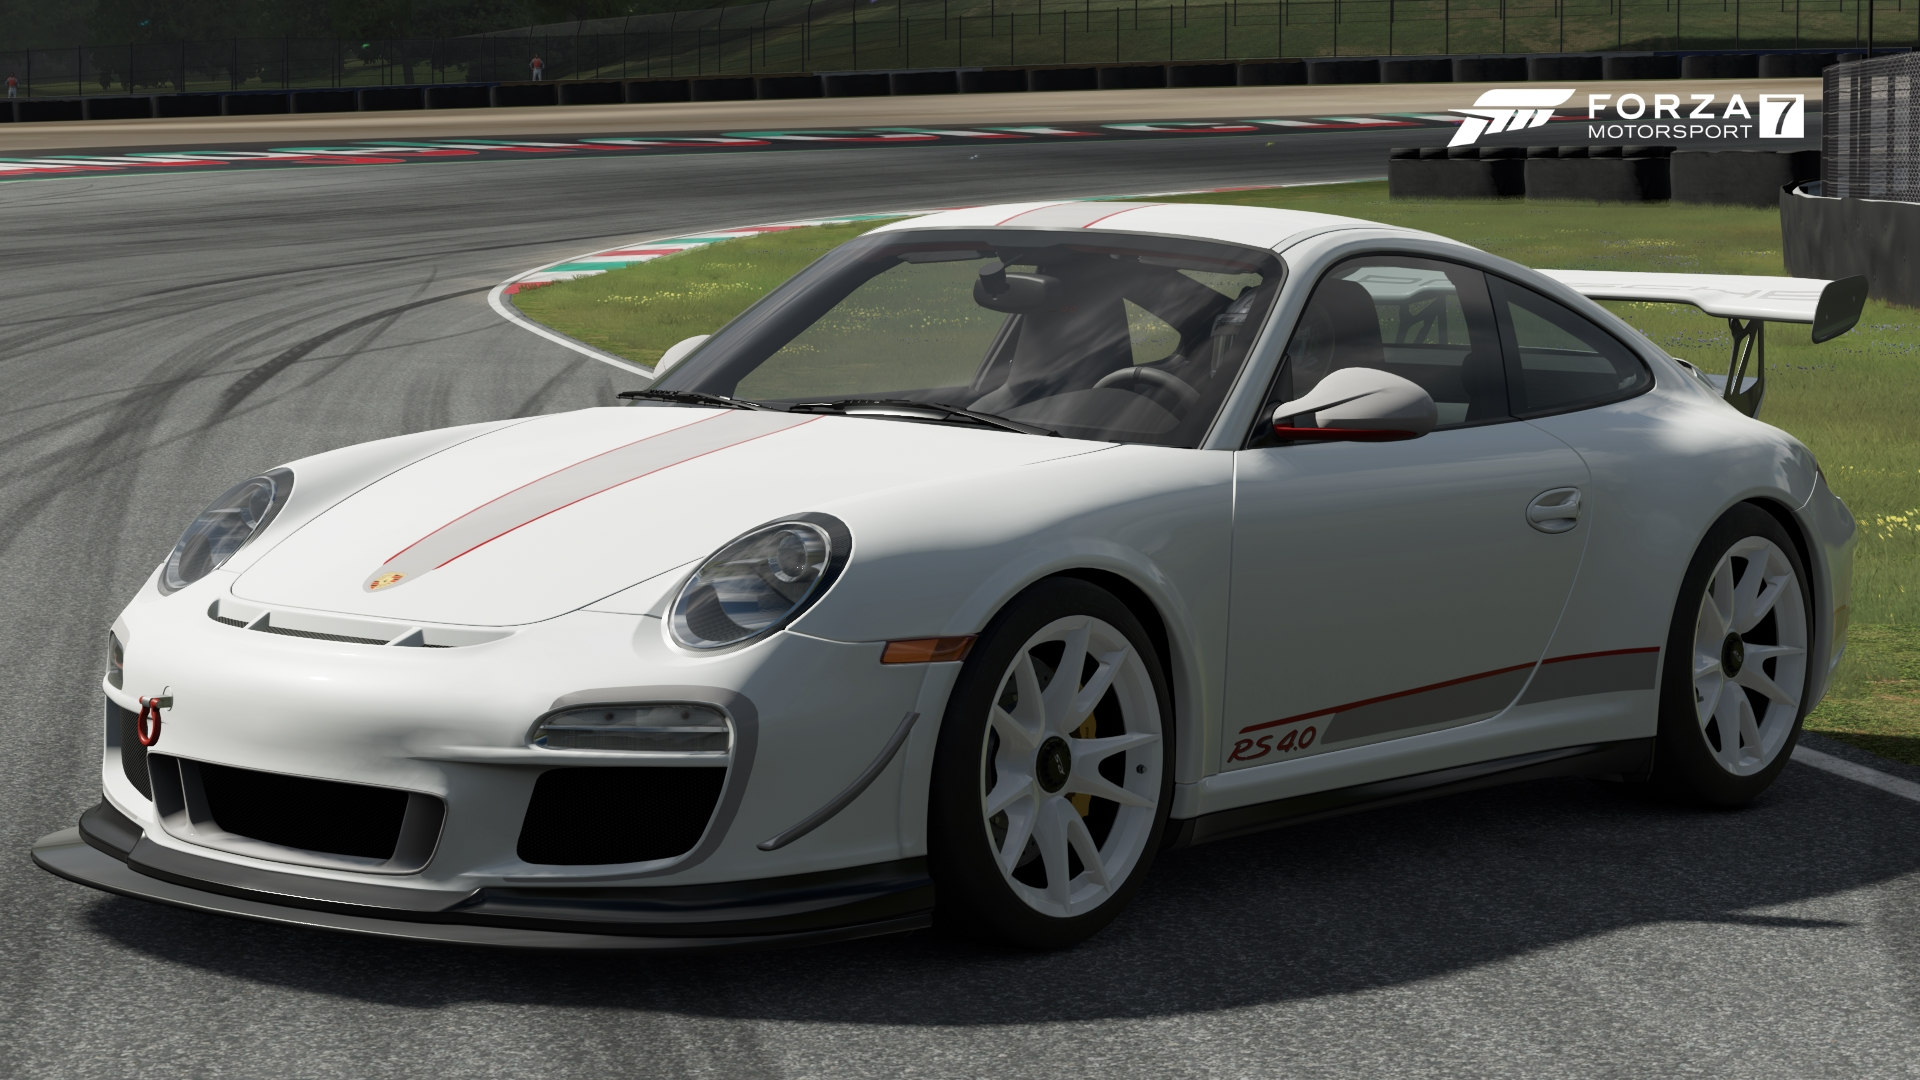 porsche 911 gt3 rs 4 0 forza motorsport wiki fandom powered by wikia. Black Bedroom Furniture Sets. Home Design Ideas